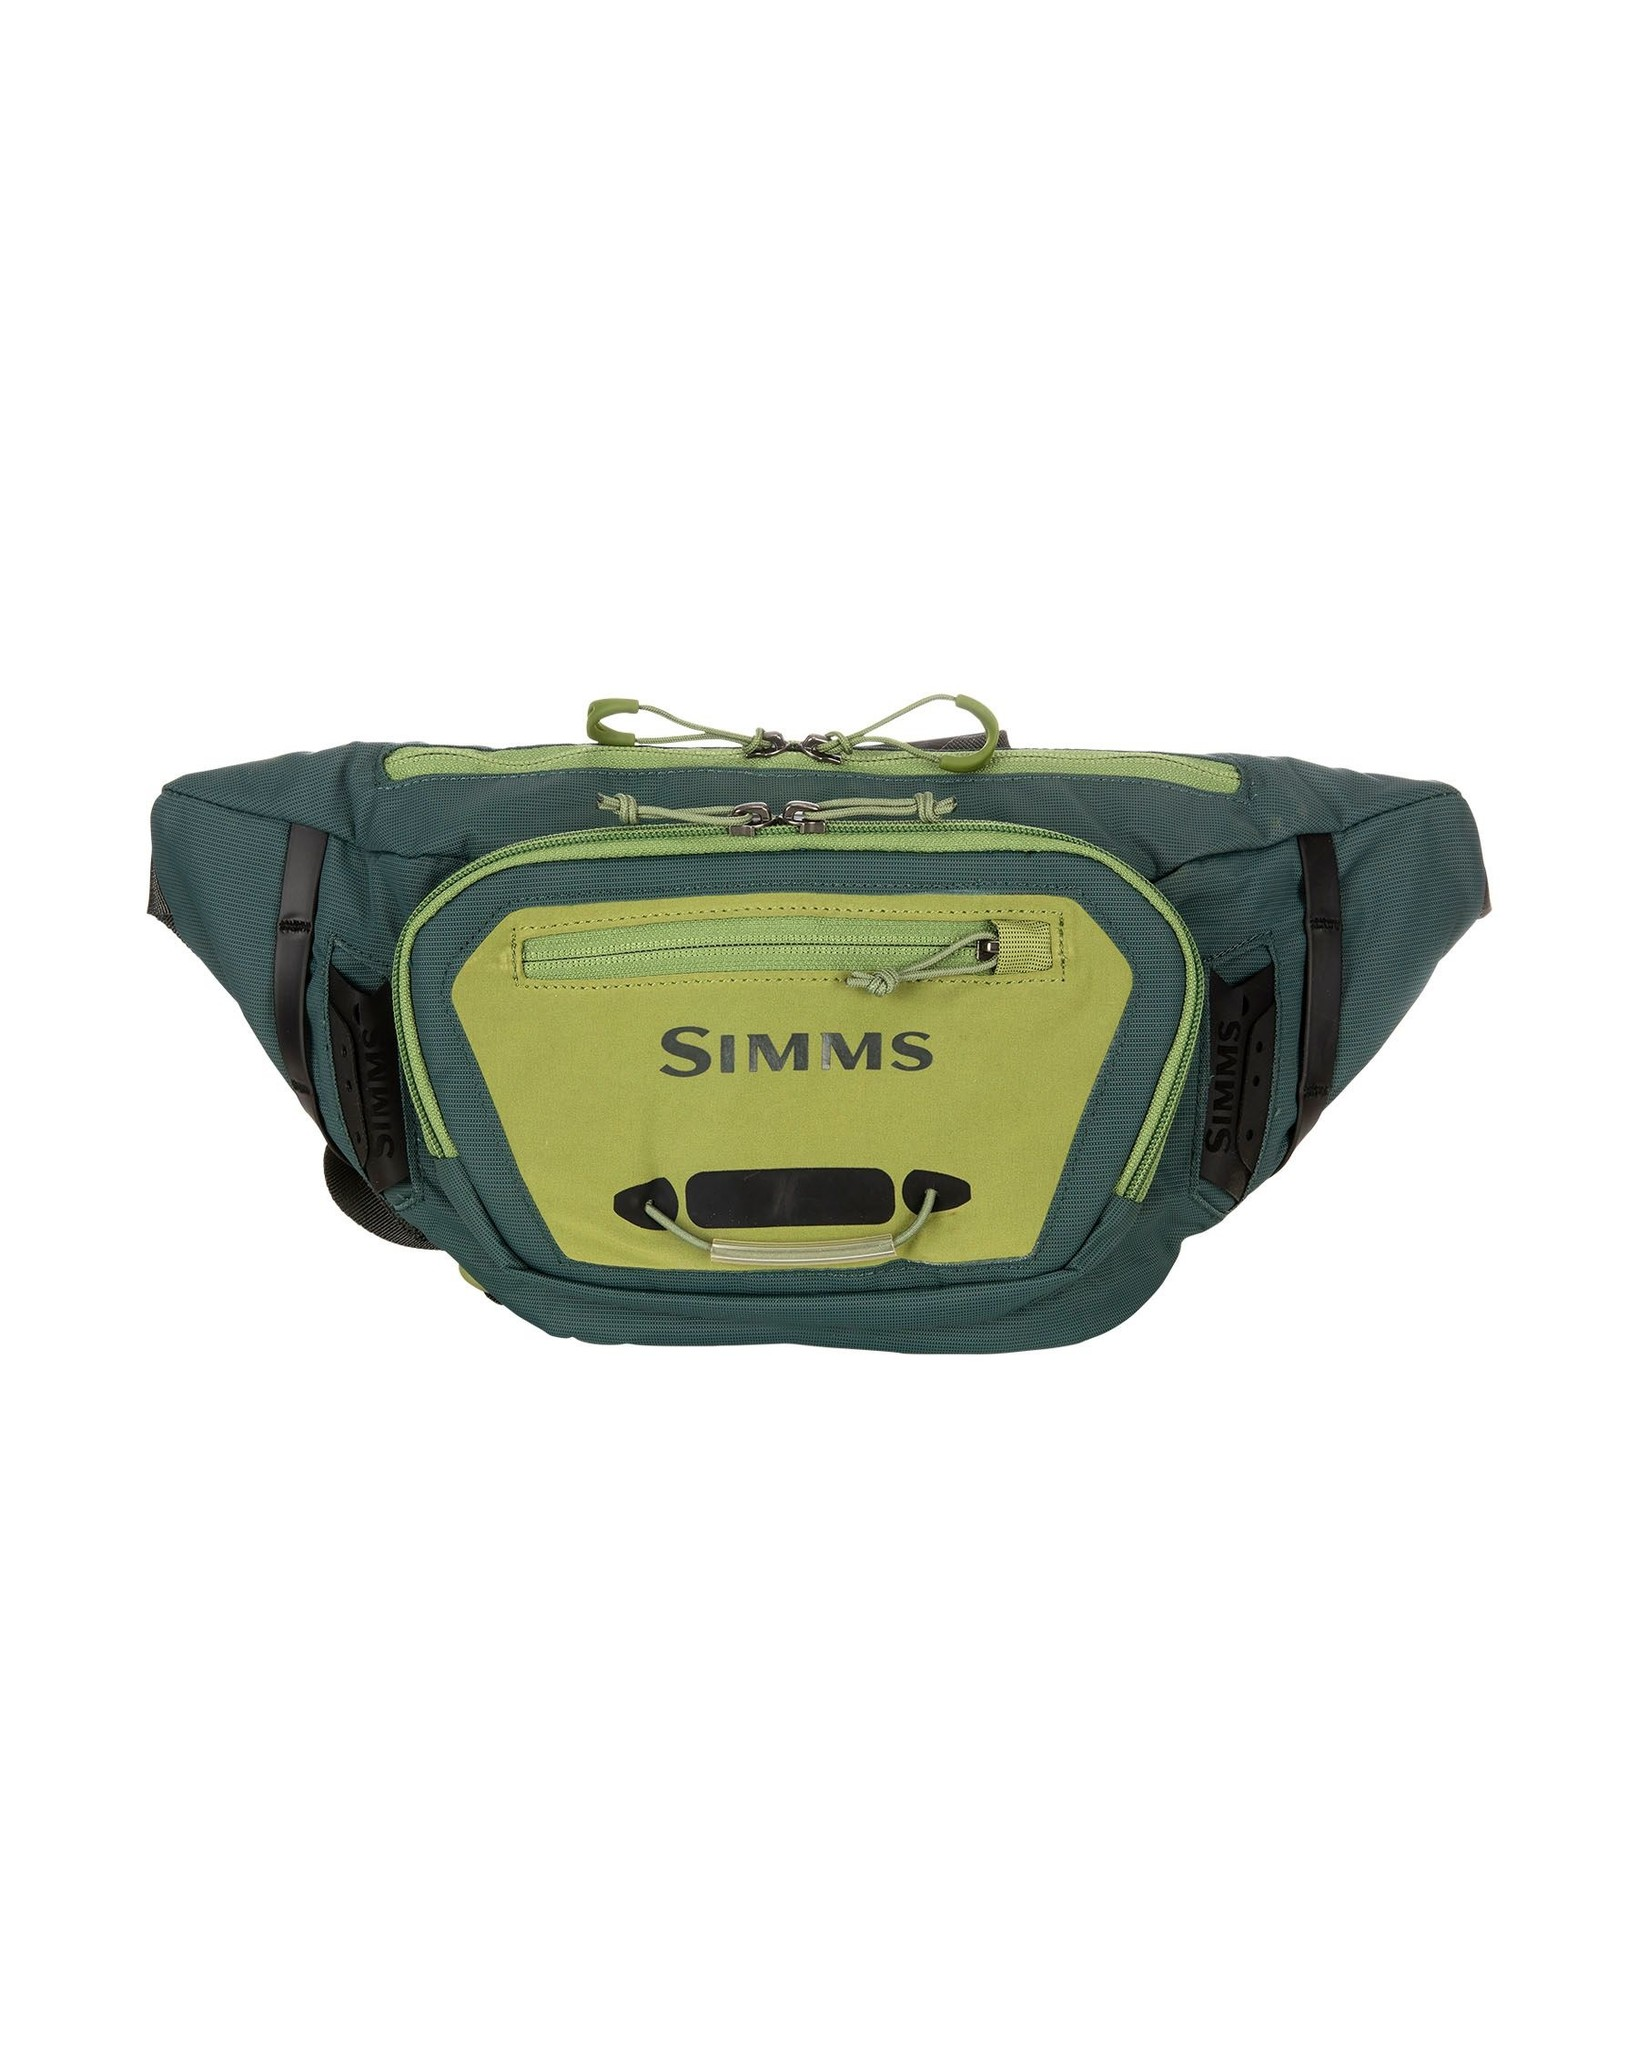 SIMMS SIMMS Freestone Tactical Hip Pack - ON SALE!!!